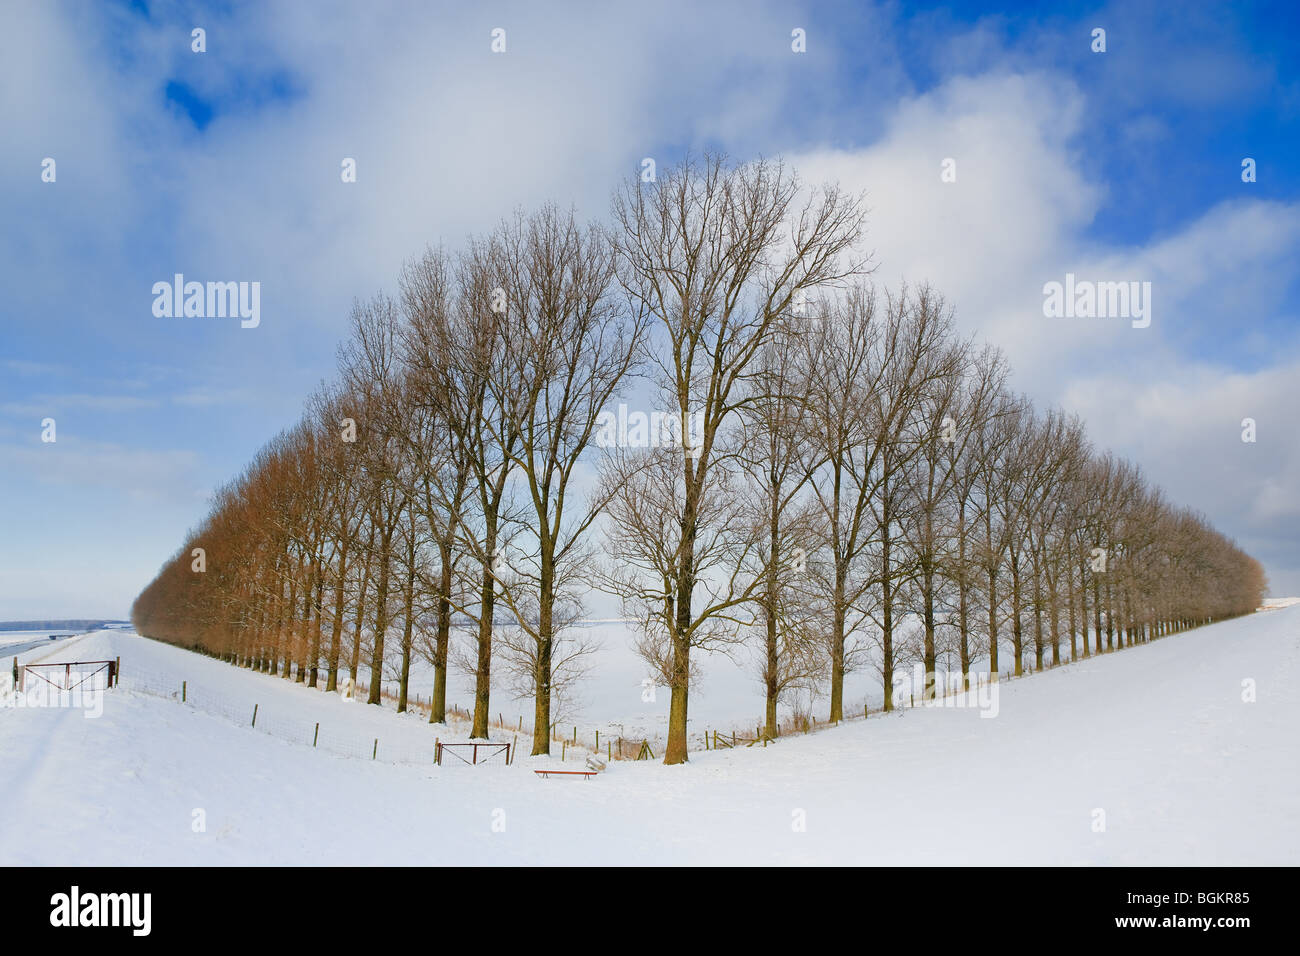 Composition with trees in the Johannes Kerkhovenpolder near Woldendorp, province Groningen, Netherlands - Stock Image